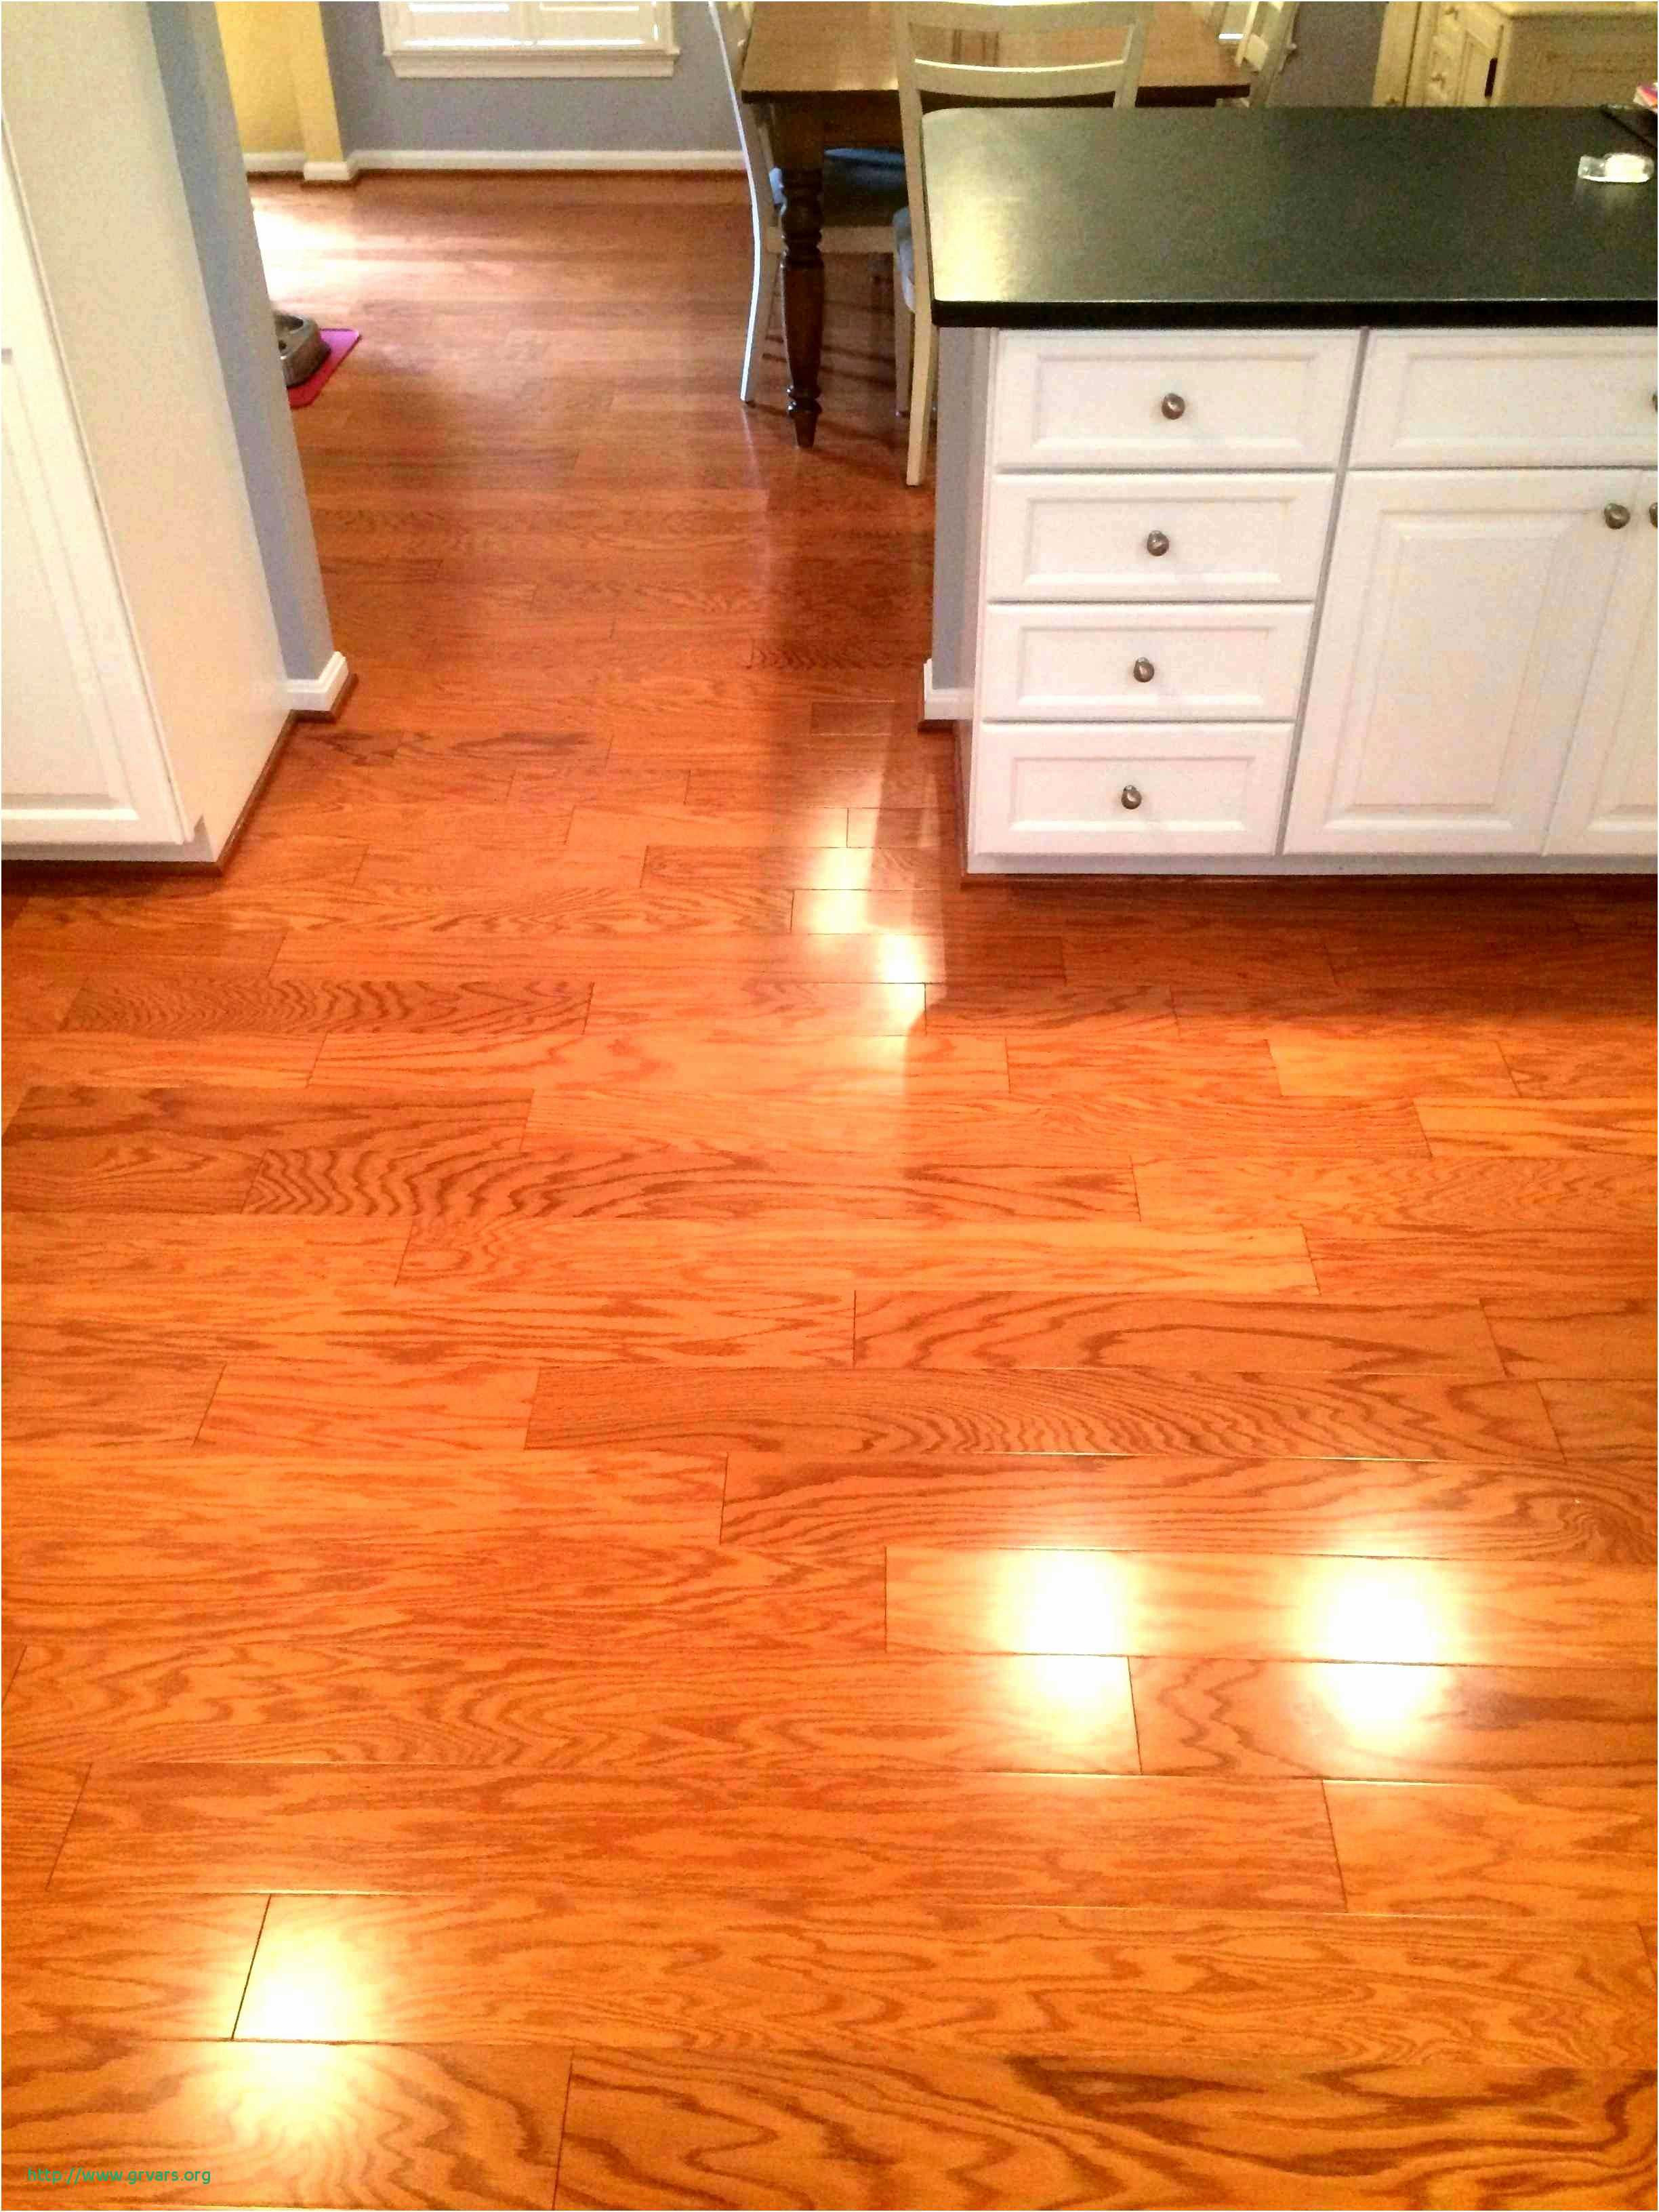 home depot hardwood floor underlayment of 16 charmant step by step hardwood floor installation ideas blog within 16 photos of the 16 charmant step by step hardwood floor installation